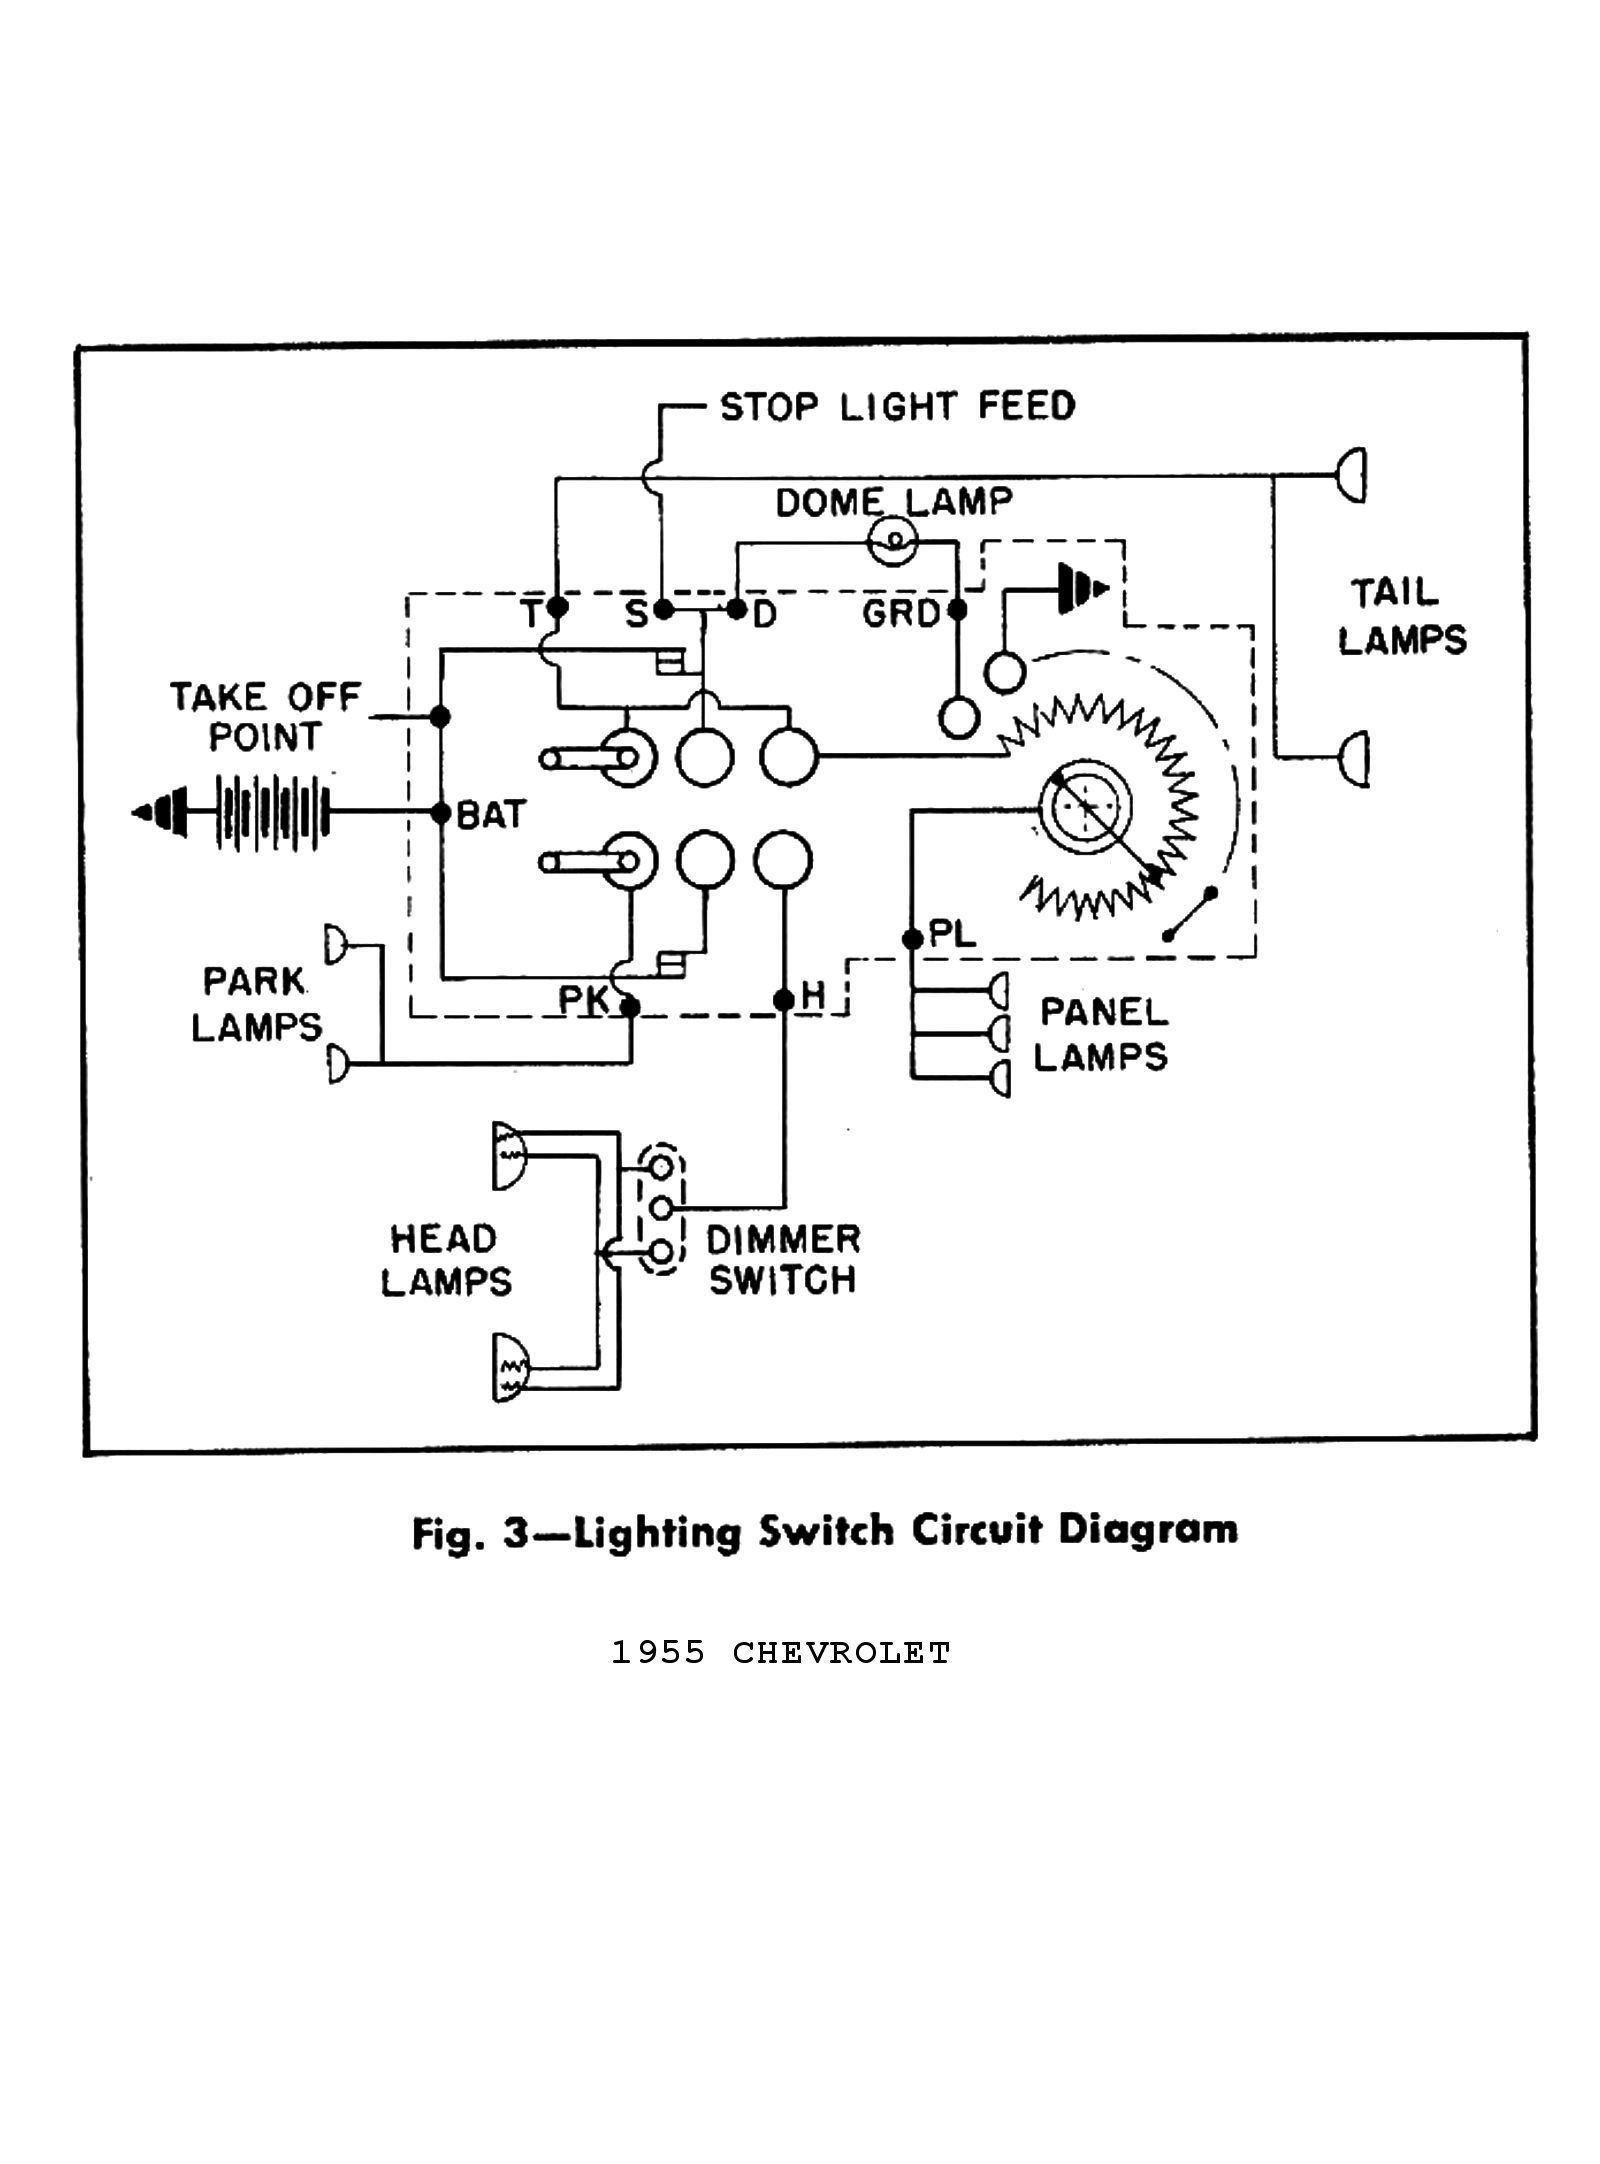 Universal Ignition Switch Wiring Diagram Inspirational 1955 Chevy Of For 1955 Chevy Ignition Switch Wiring Light Switch Wiring Diagram Electrical Switch Wiring